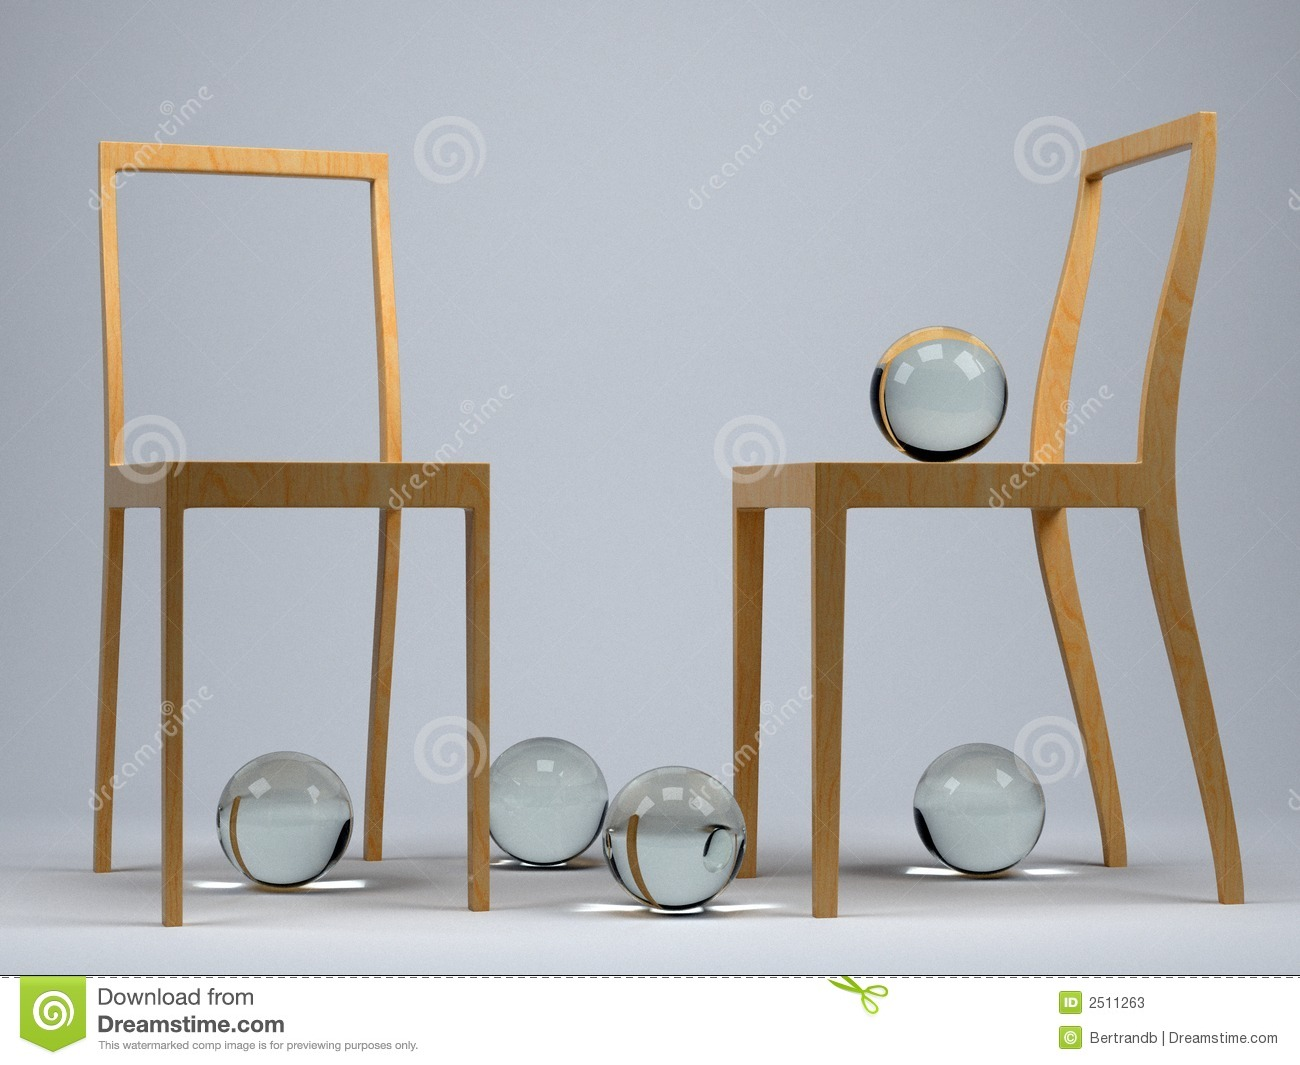 Two Modern Chairs In A Studio Setting With Five Glass Balls